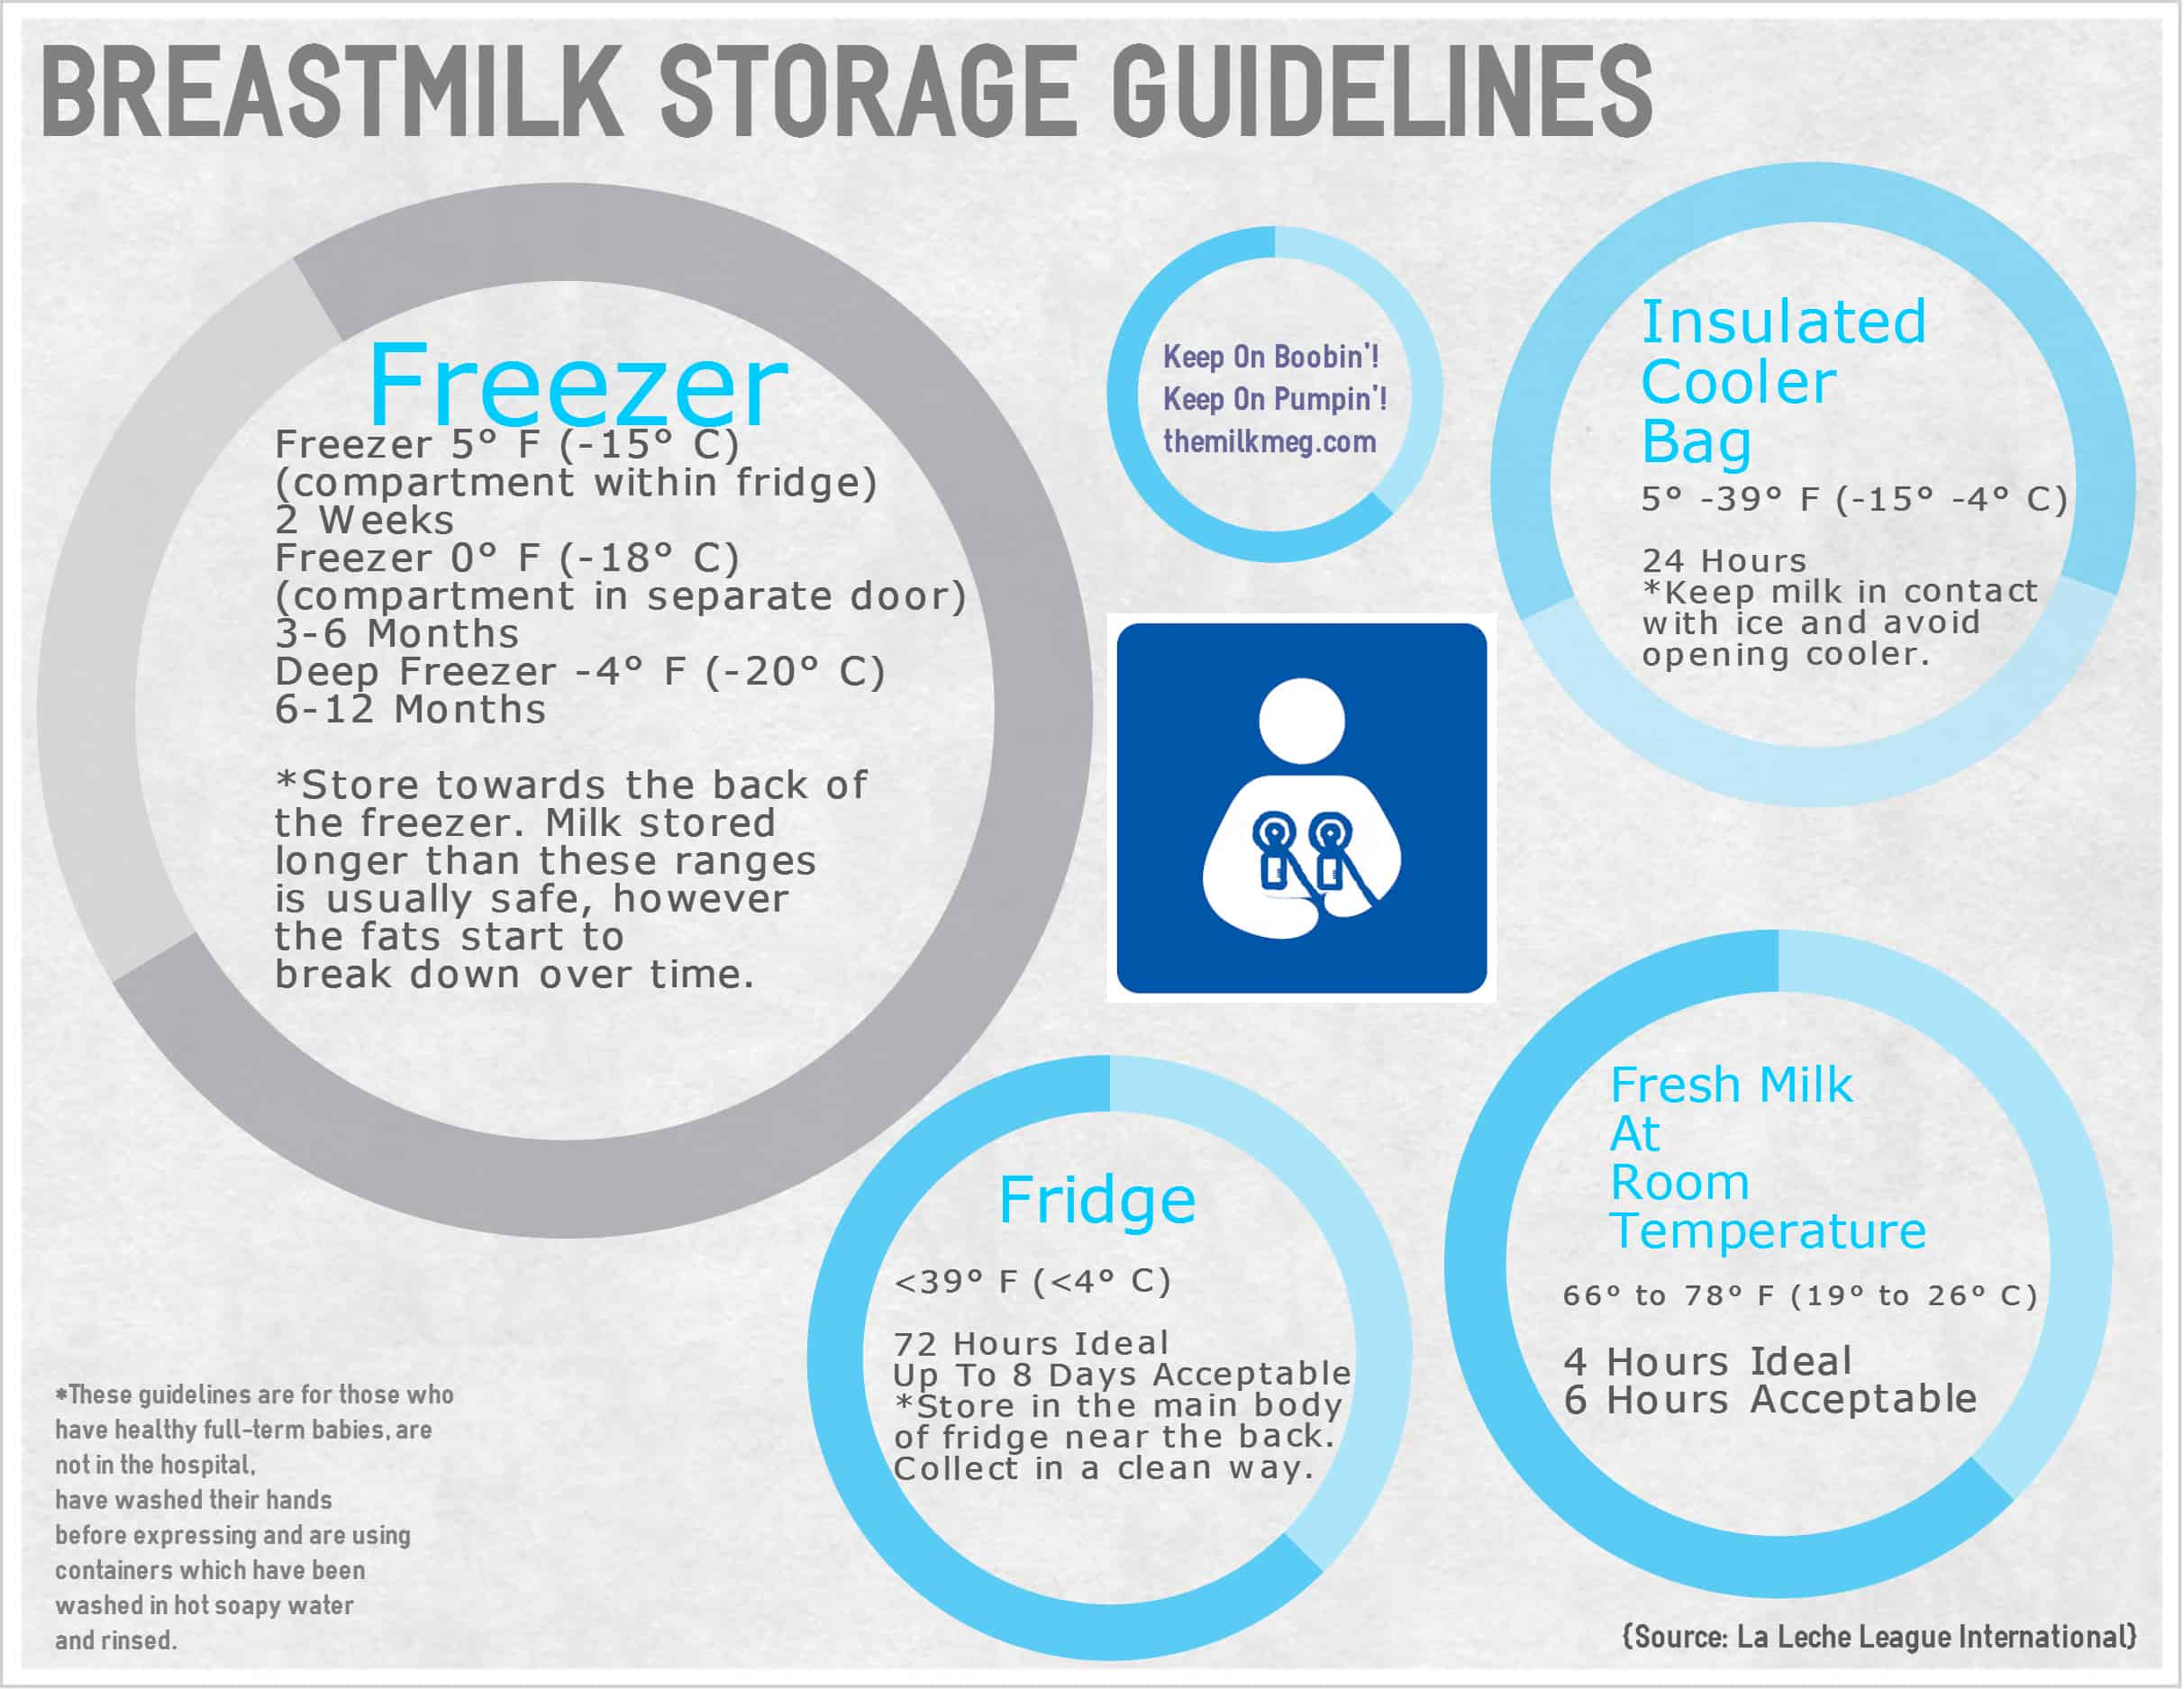 Breastmilk Storage Guidelines And FAQ  sc 1 st  The Milk Meg & Keep On Pumpinu0027. Breastmilk Storage Guidelines And FAQ | The Milk Meg